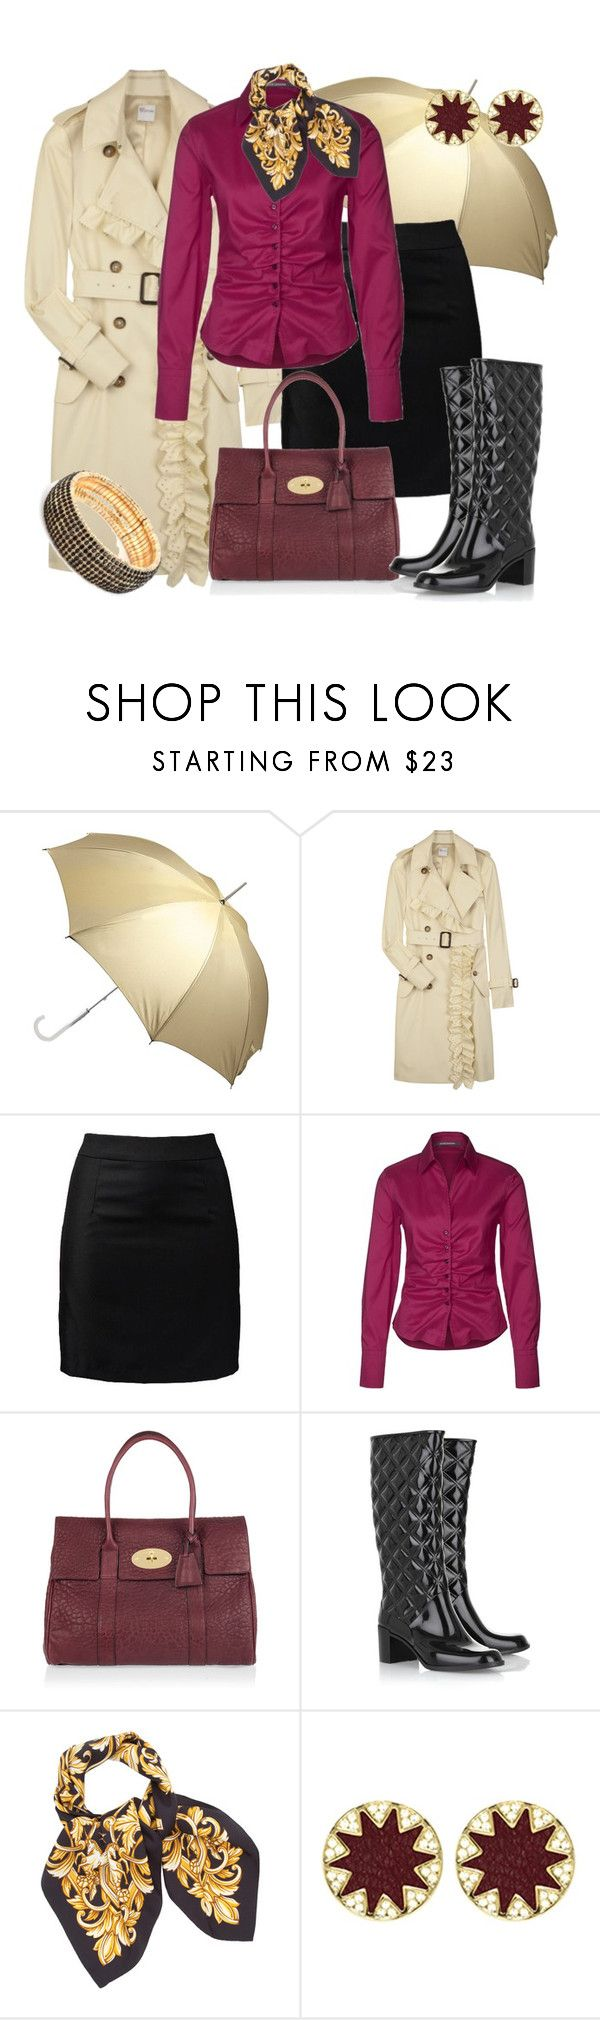 """""""DÍAS DE LLUVIA"""" by outfits-de-moda2 ❤ liked on Polyvore featuring Totes, RED Valentino, JJ Park, René Lezard, Mulberry, Marc Jacobs, Givenchy, House of Harlow 1960 and BaubleBar"""